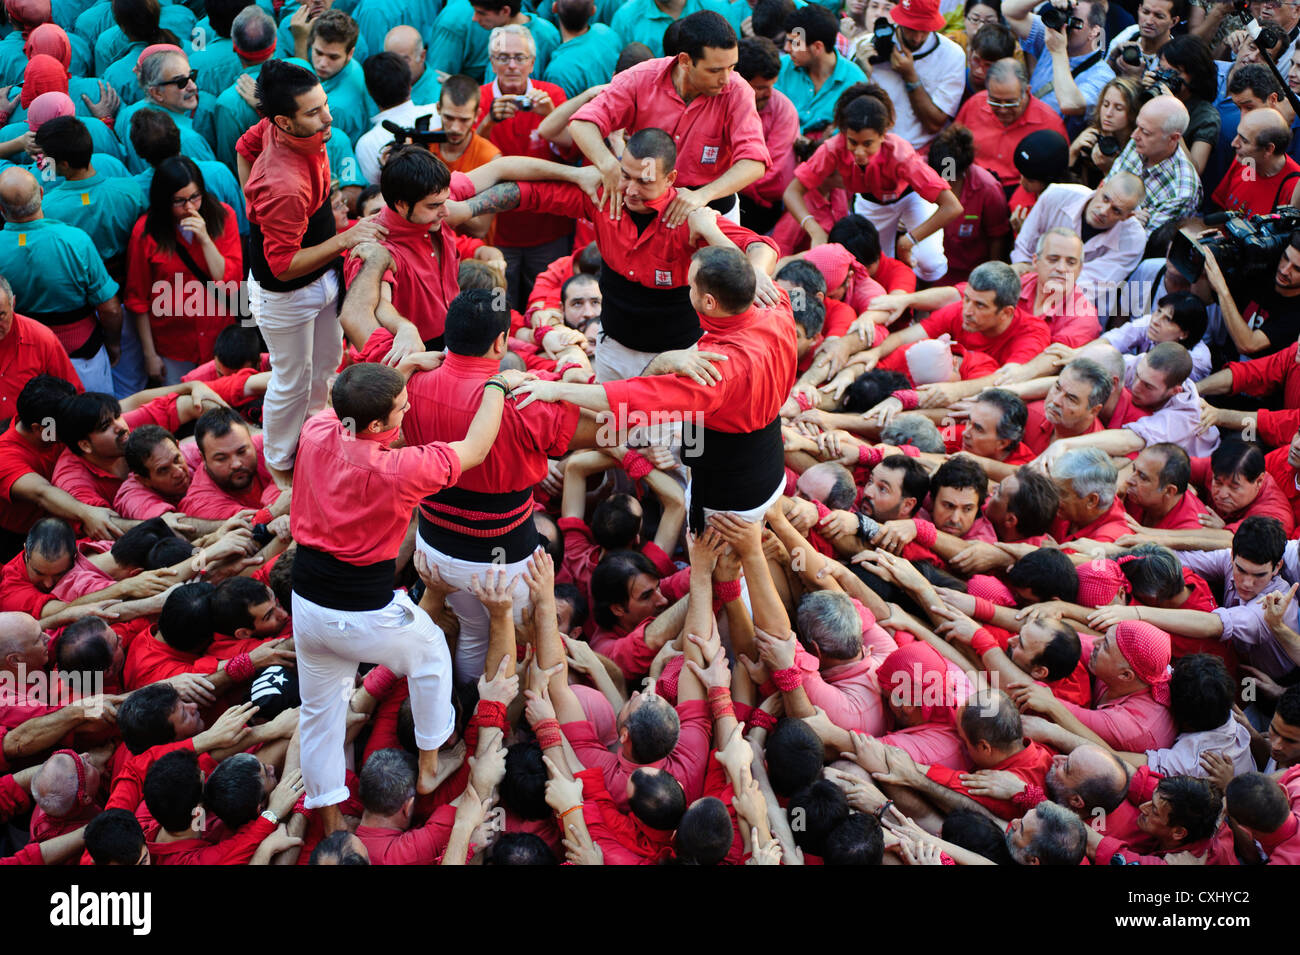 Traditional Castellers building human castles for La merce Festival in Barcelona, Spain. - Stock Image